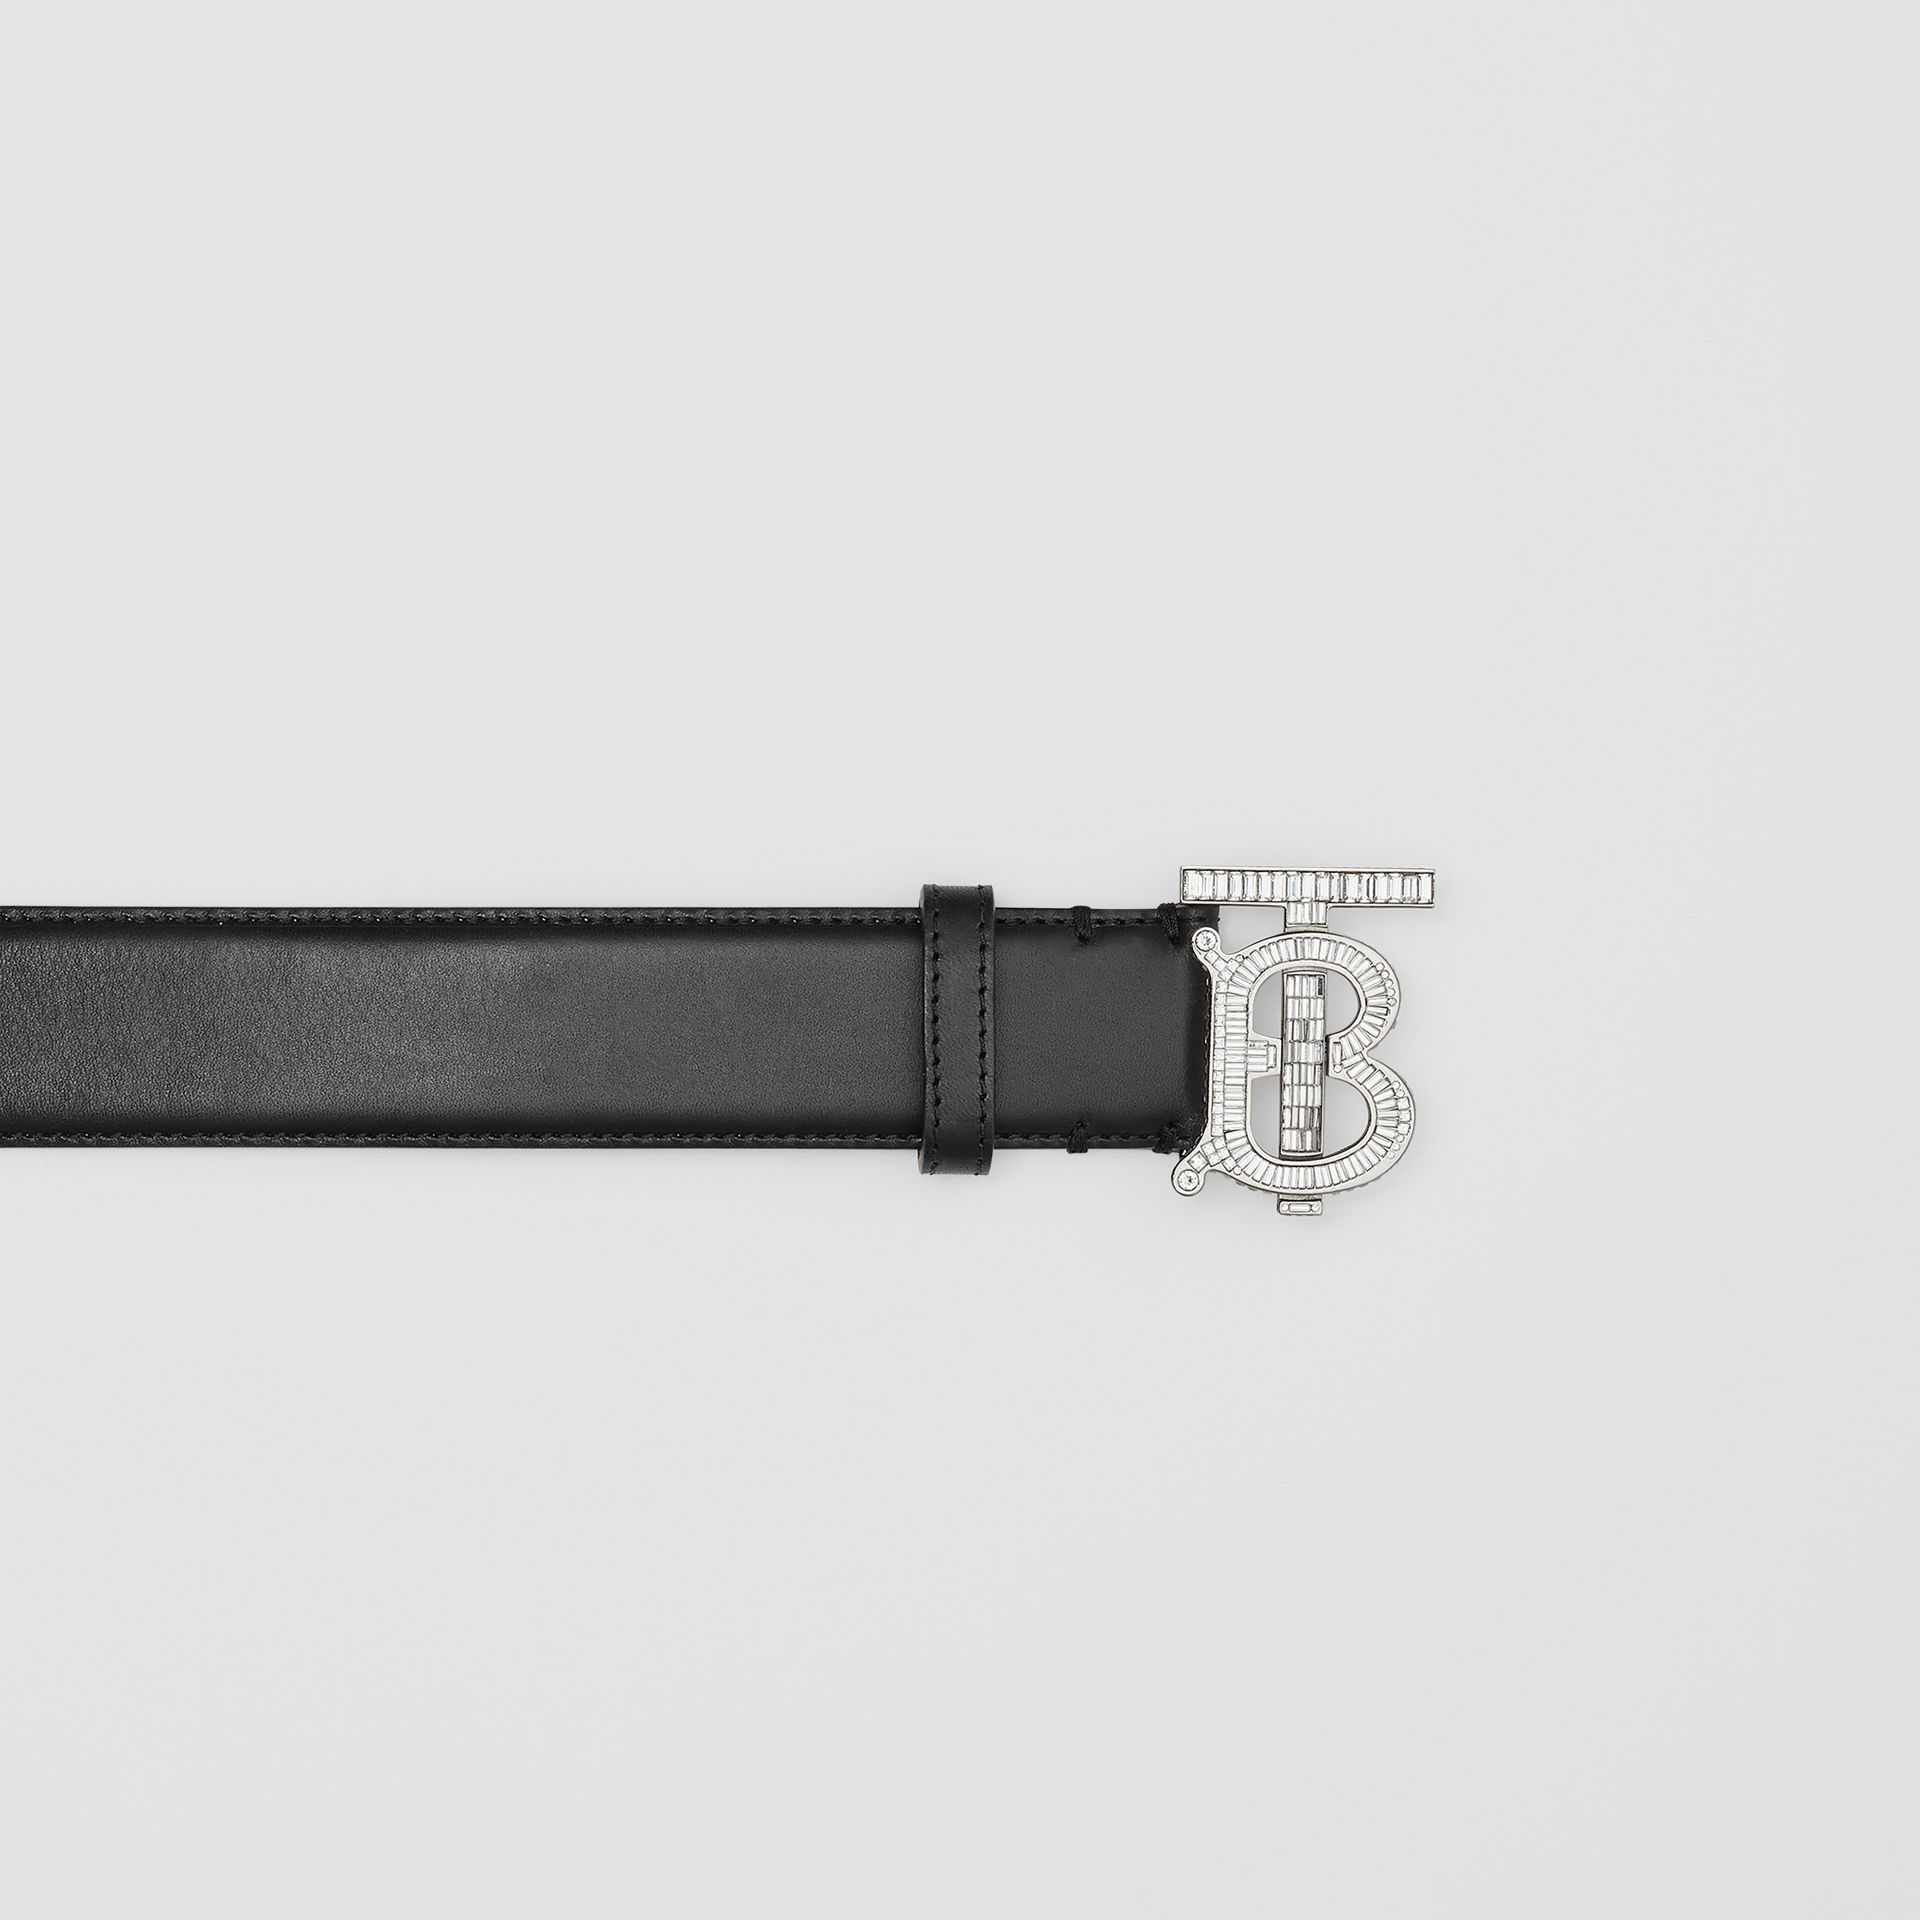 Crystal Monogram Motif Leather Belt in Black/palladium - Women | Burberry United States - gallery image 1